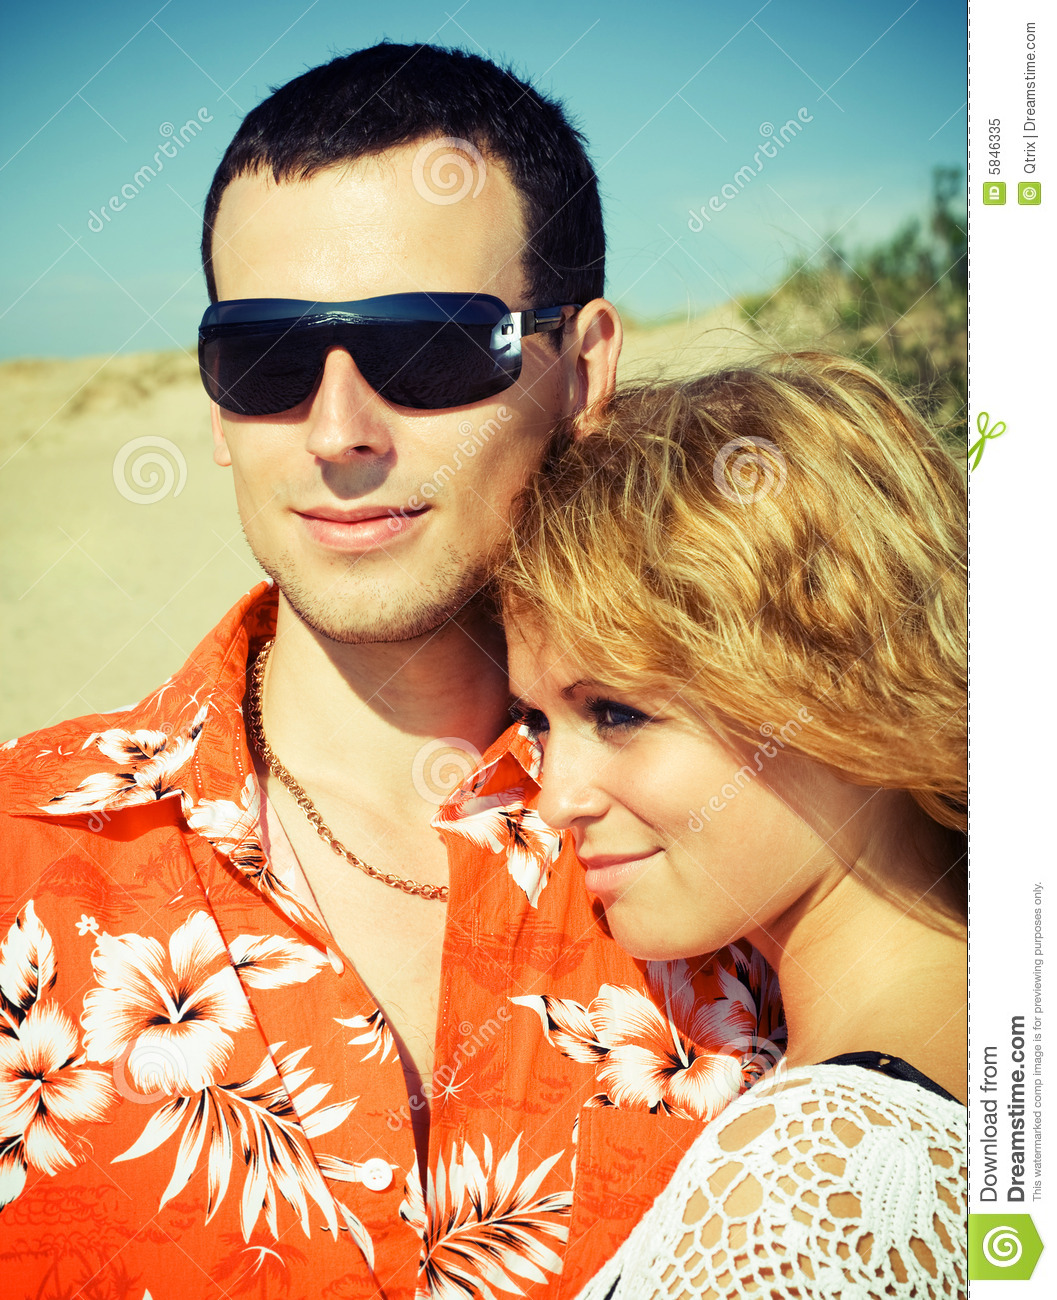 Couple On The Beach. Stock Image. Image Of Outdoors